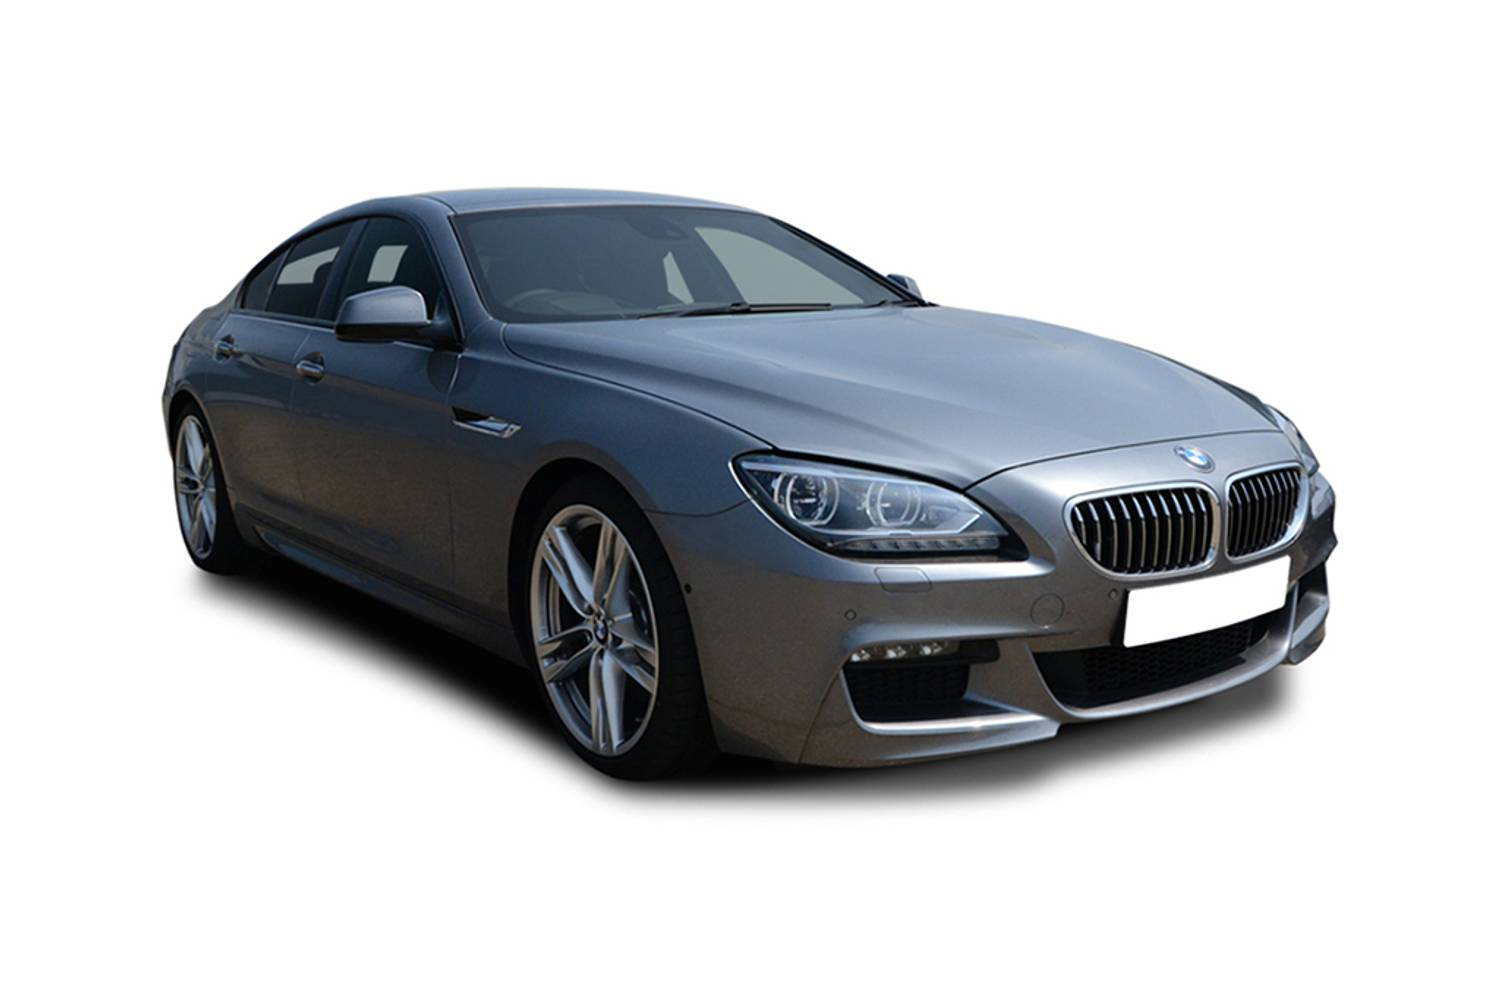 new bmw 6 series gran coupe 640i se 4 door auto 2012 for sale. Black Bedroom Furniture Sets. Home Design Ideas